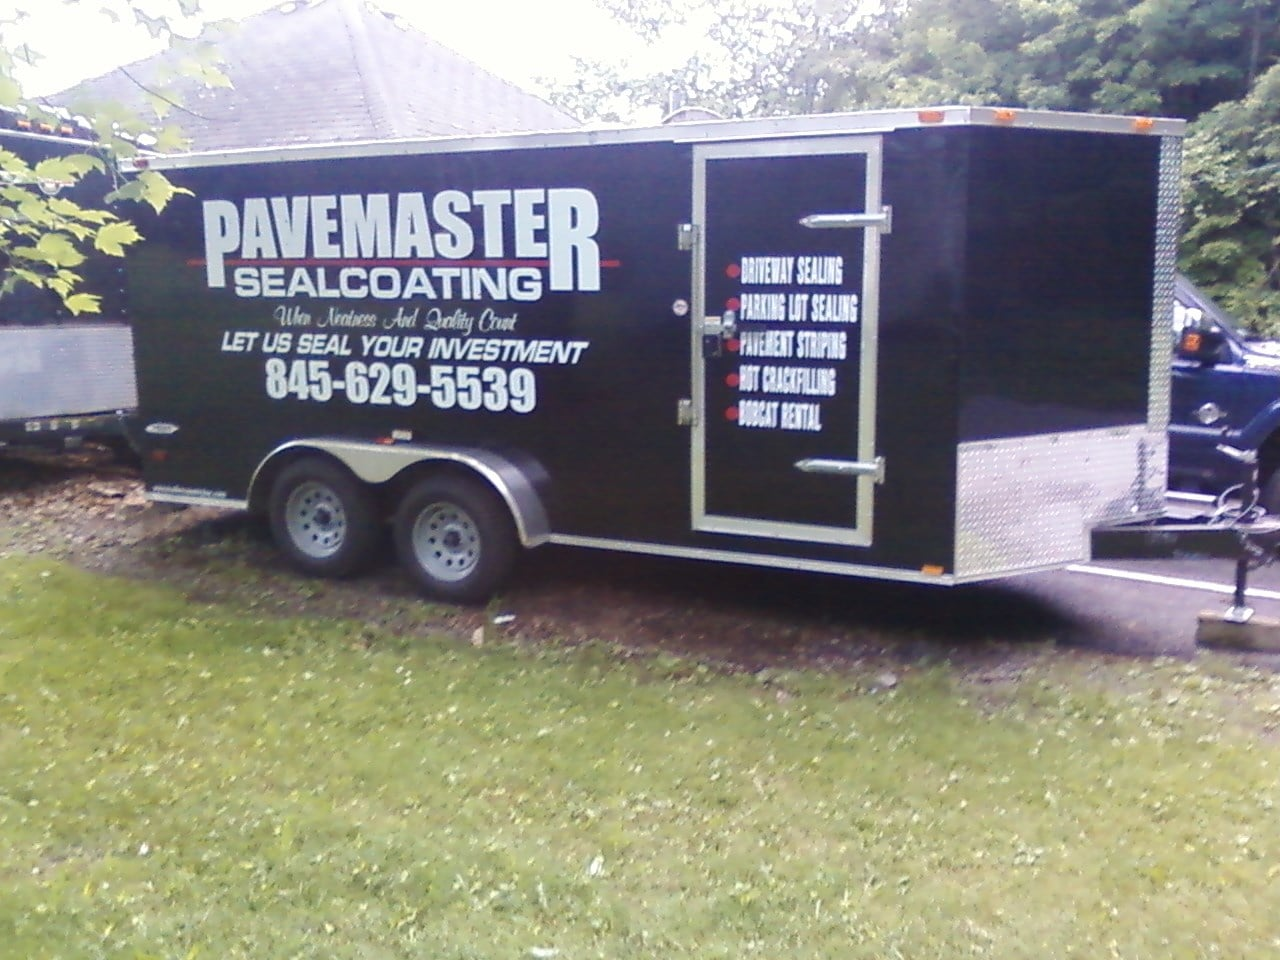 PAVEMASTER SEALCOATING